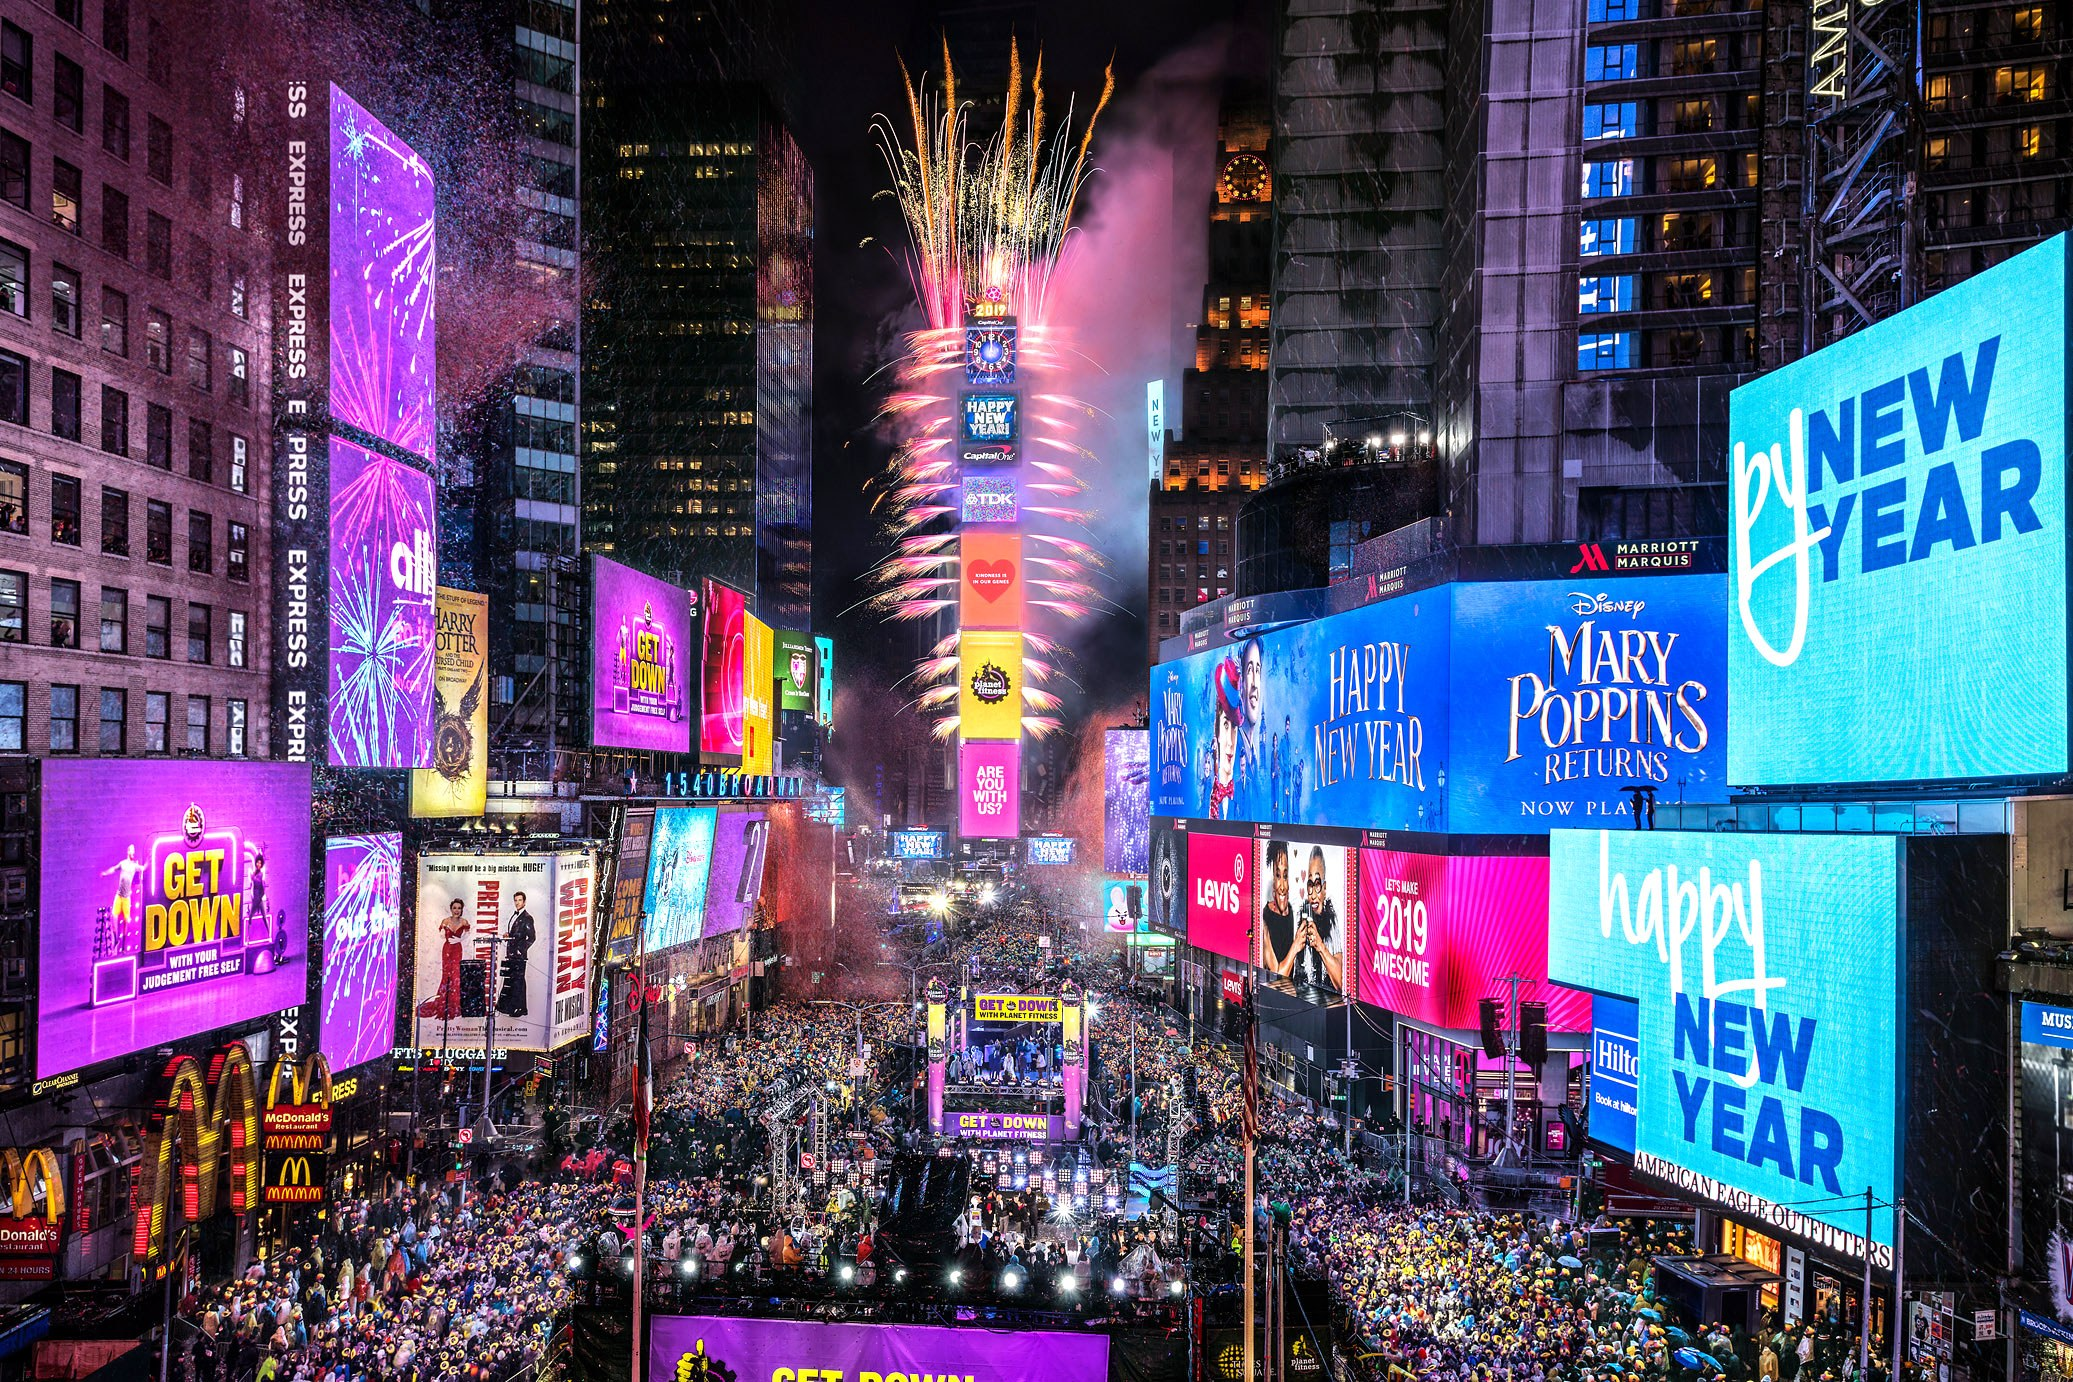 One Times Square During New Year's Eve